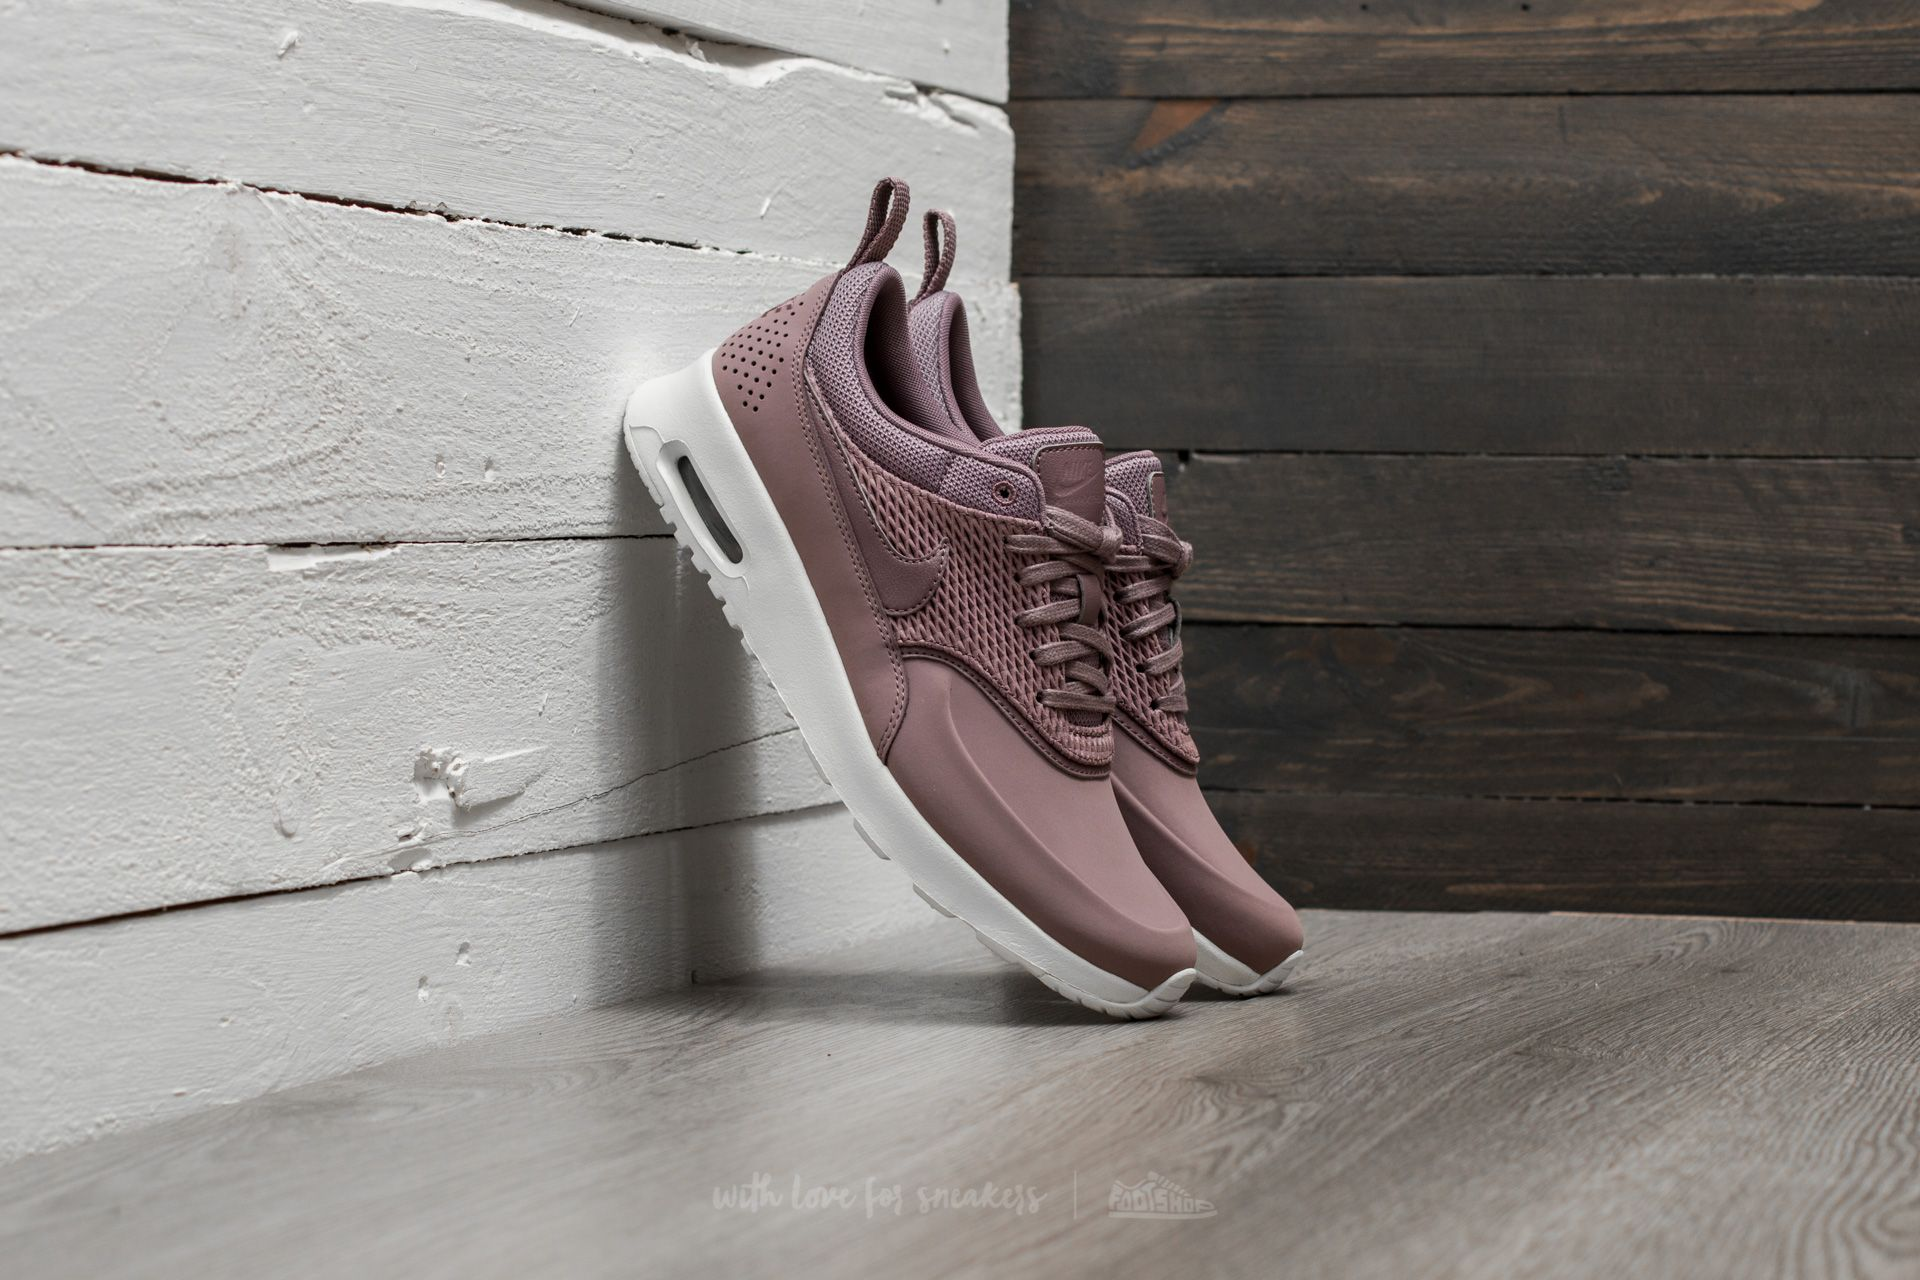 Nike Wmns Air Max Thea Premium Leather Taupe Grey Taupe Grey Sail | Footshop